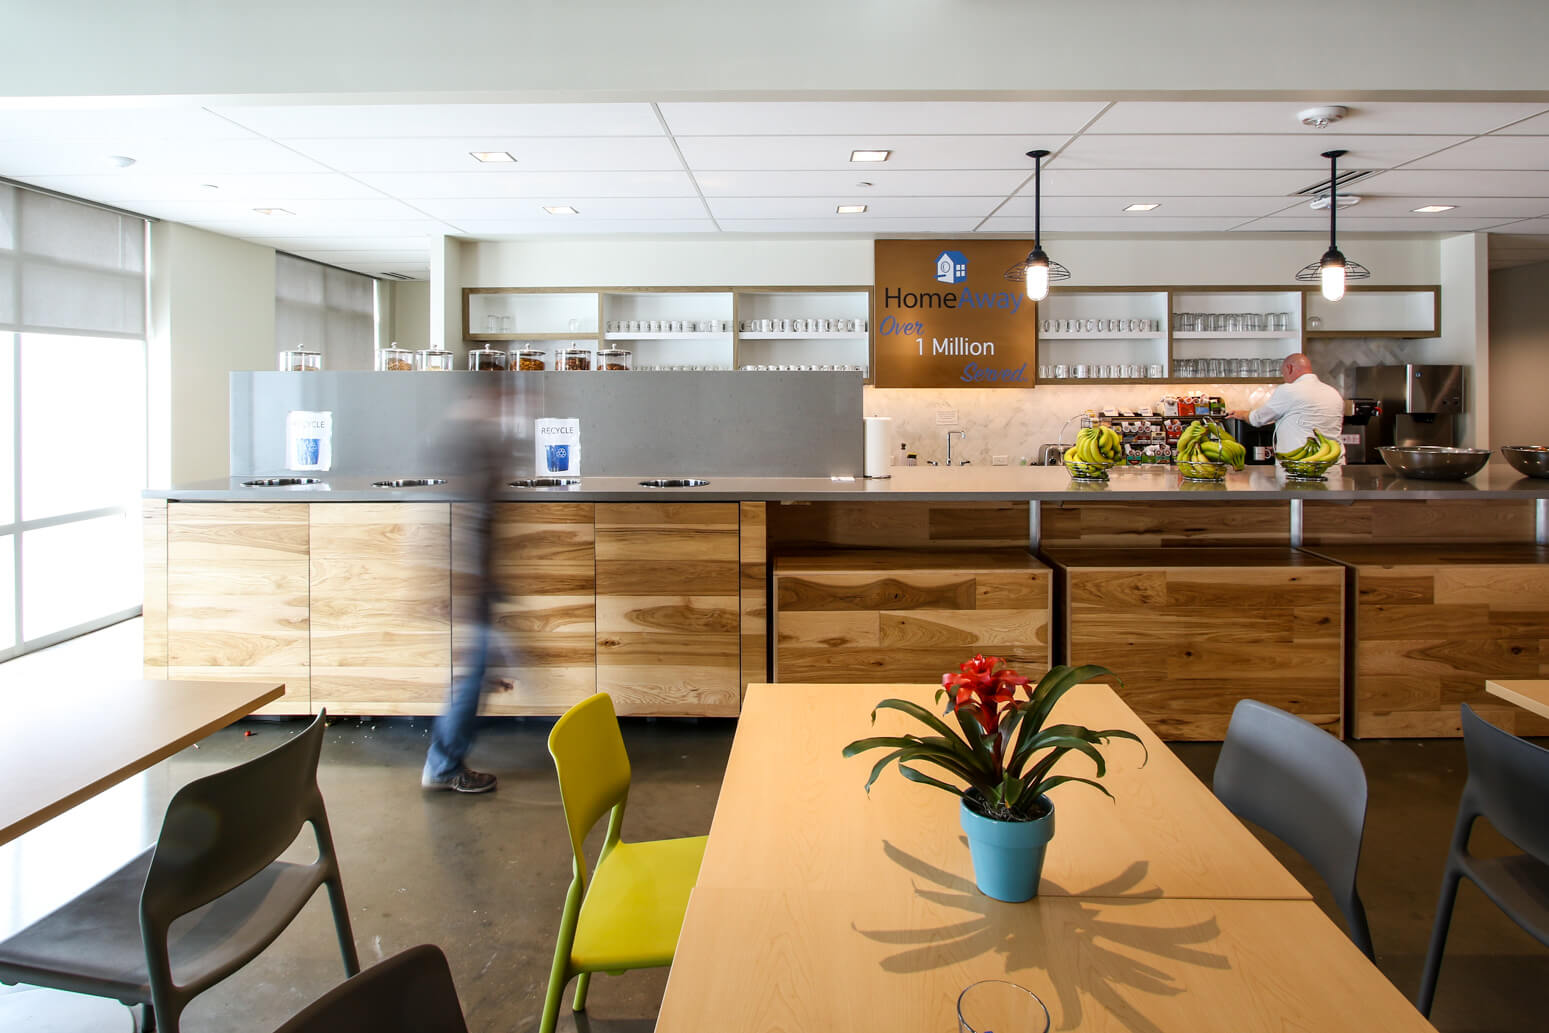 HomeAway Austin Office Killer Spaces-13